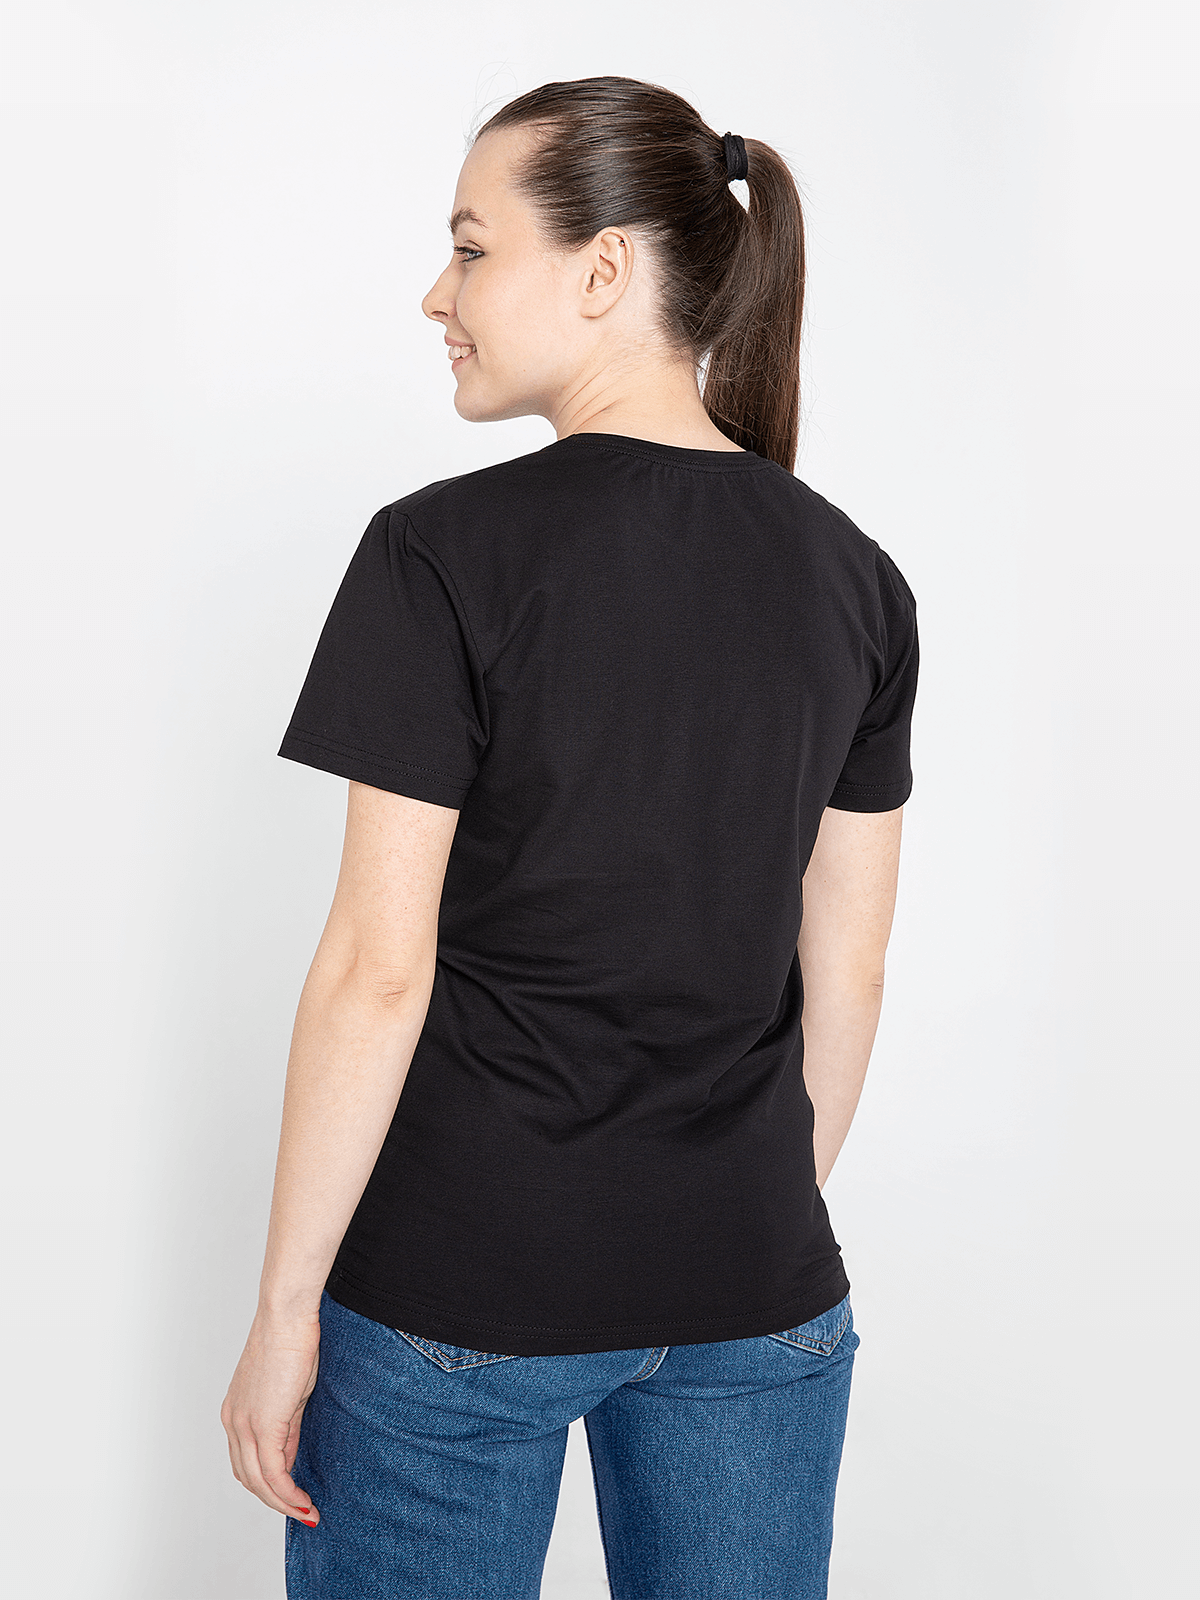 Women's T-Shirt Fly Cabin. Color black.  Don't worry about the universal size.